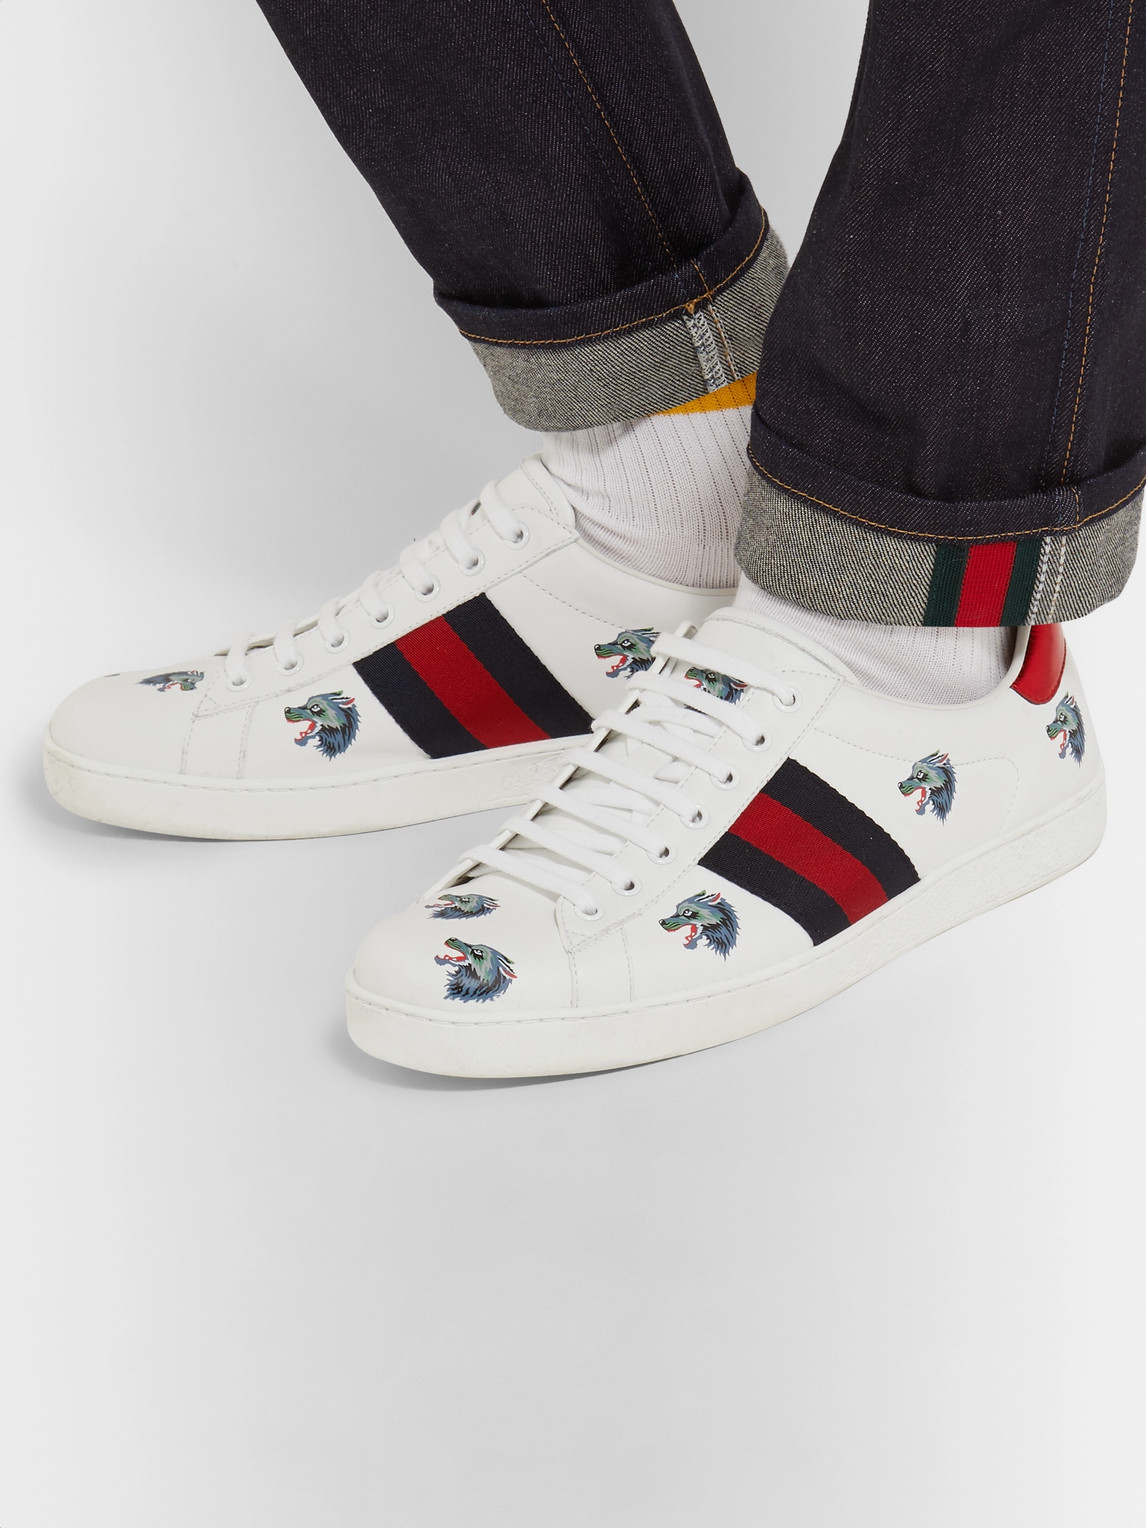 Gucci Sneakers ACE PRINTED LEATHER SNEAKERS